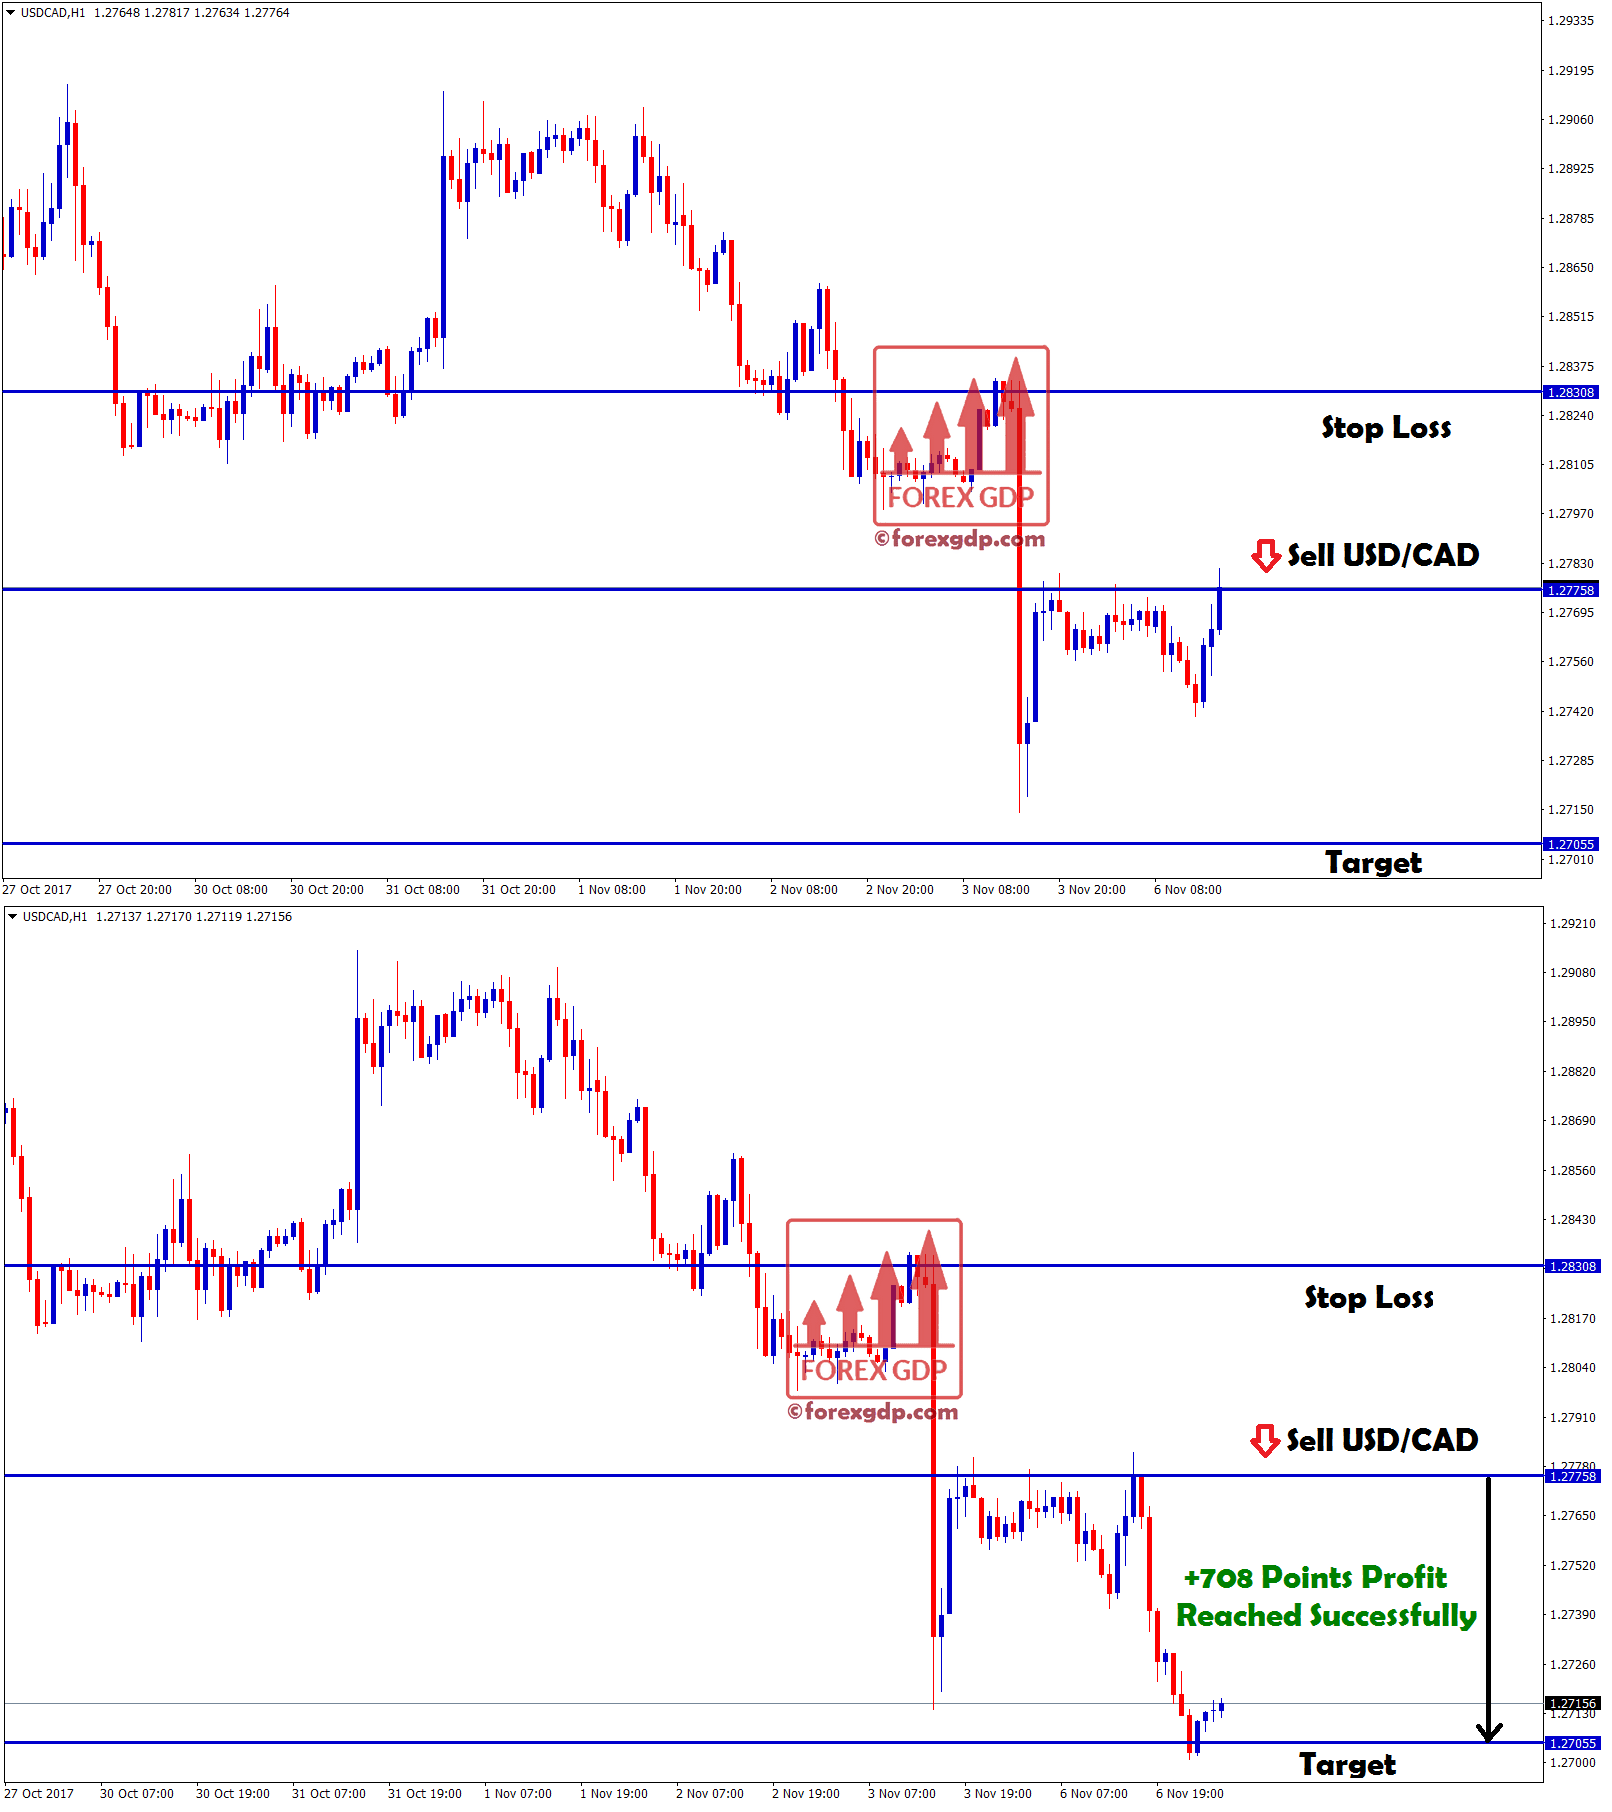 USDCAD sell signal reached 708 points